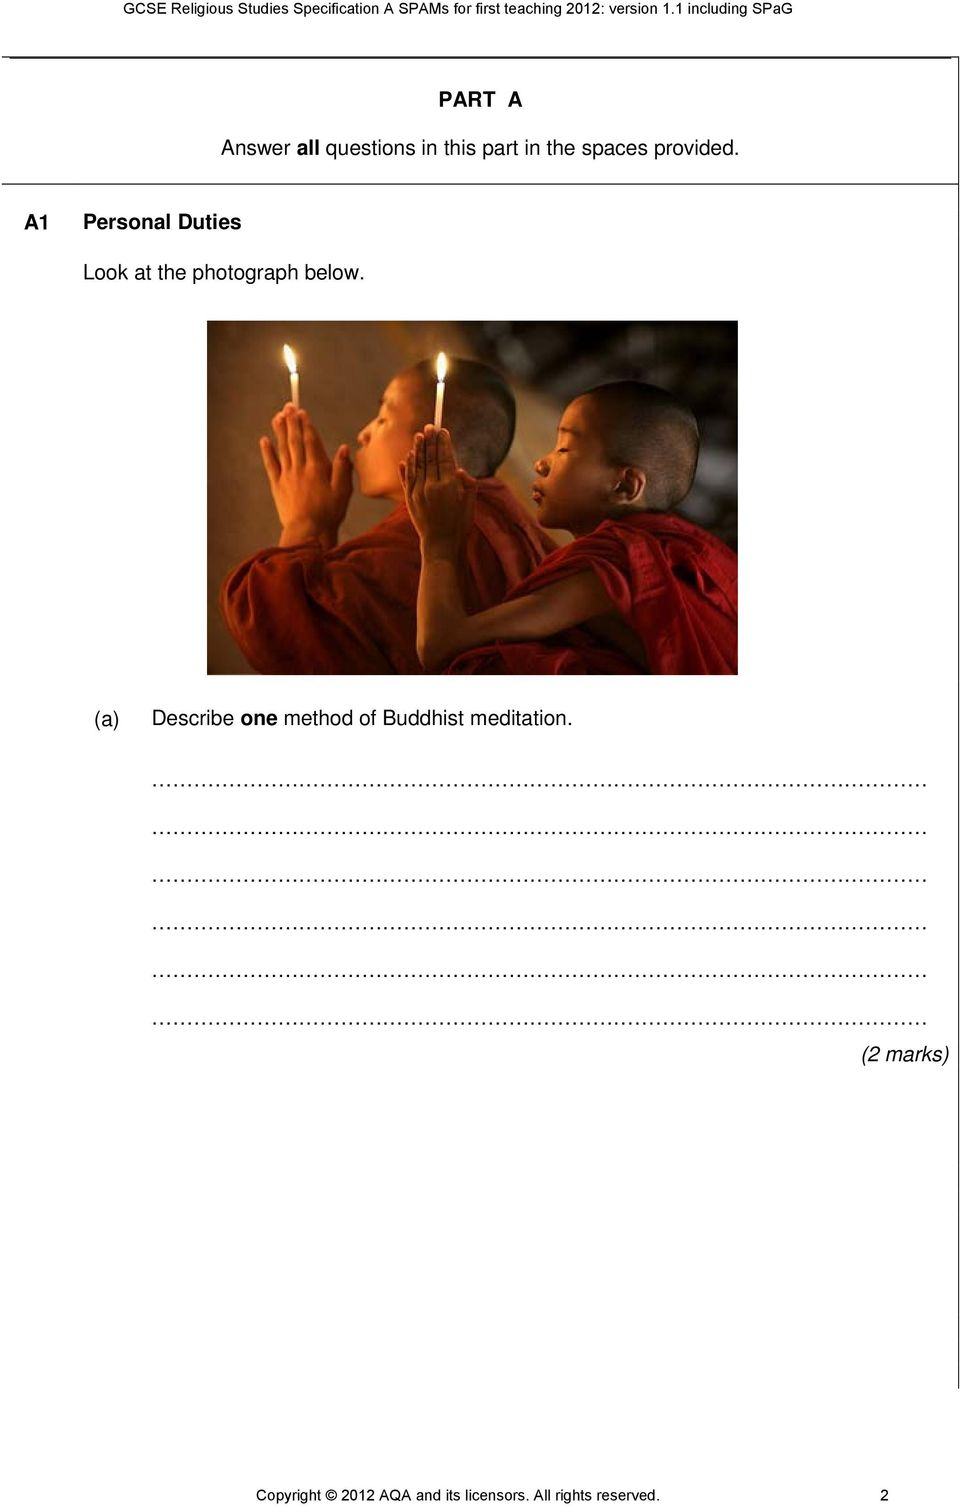 (a) Describe one method of Buddhist meditation.